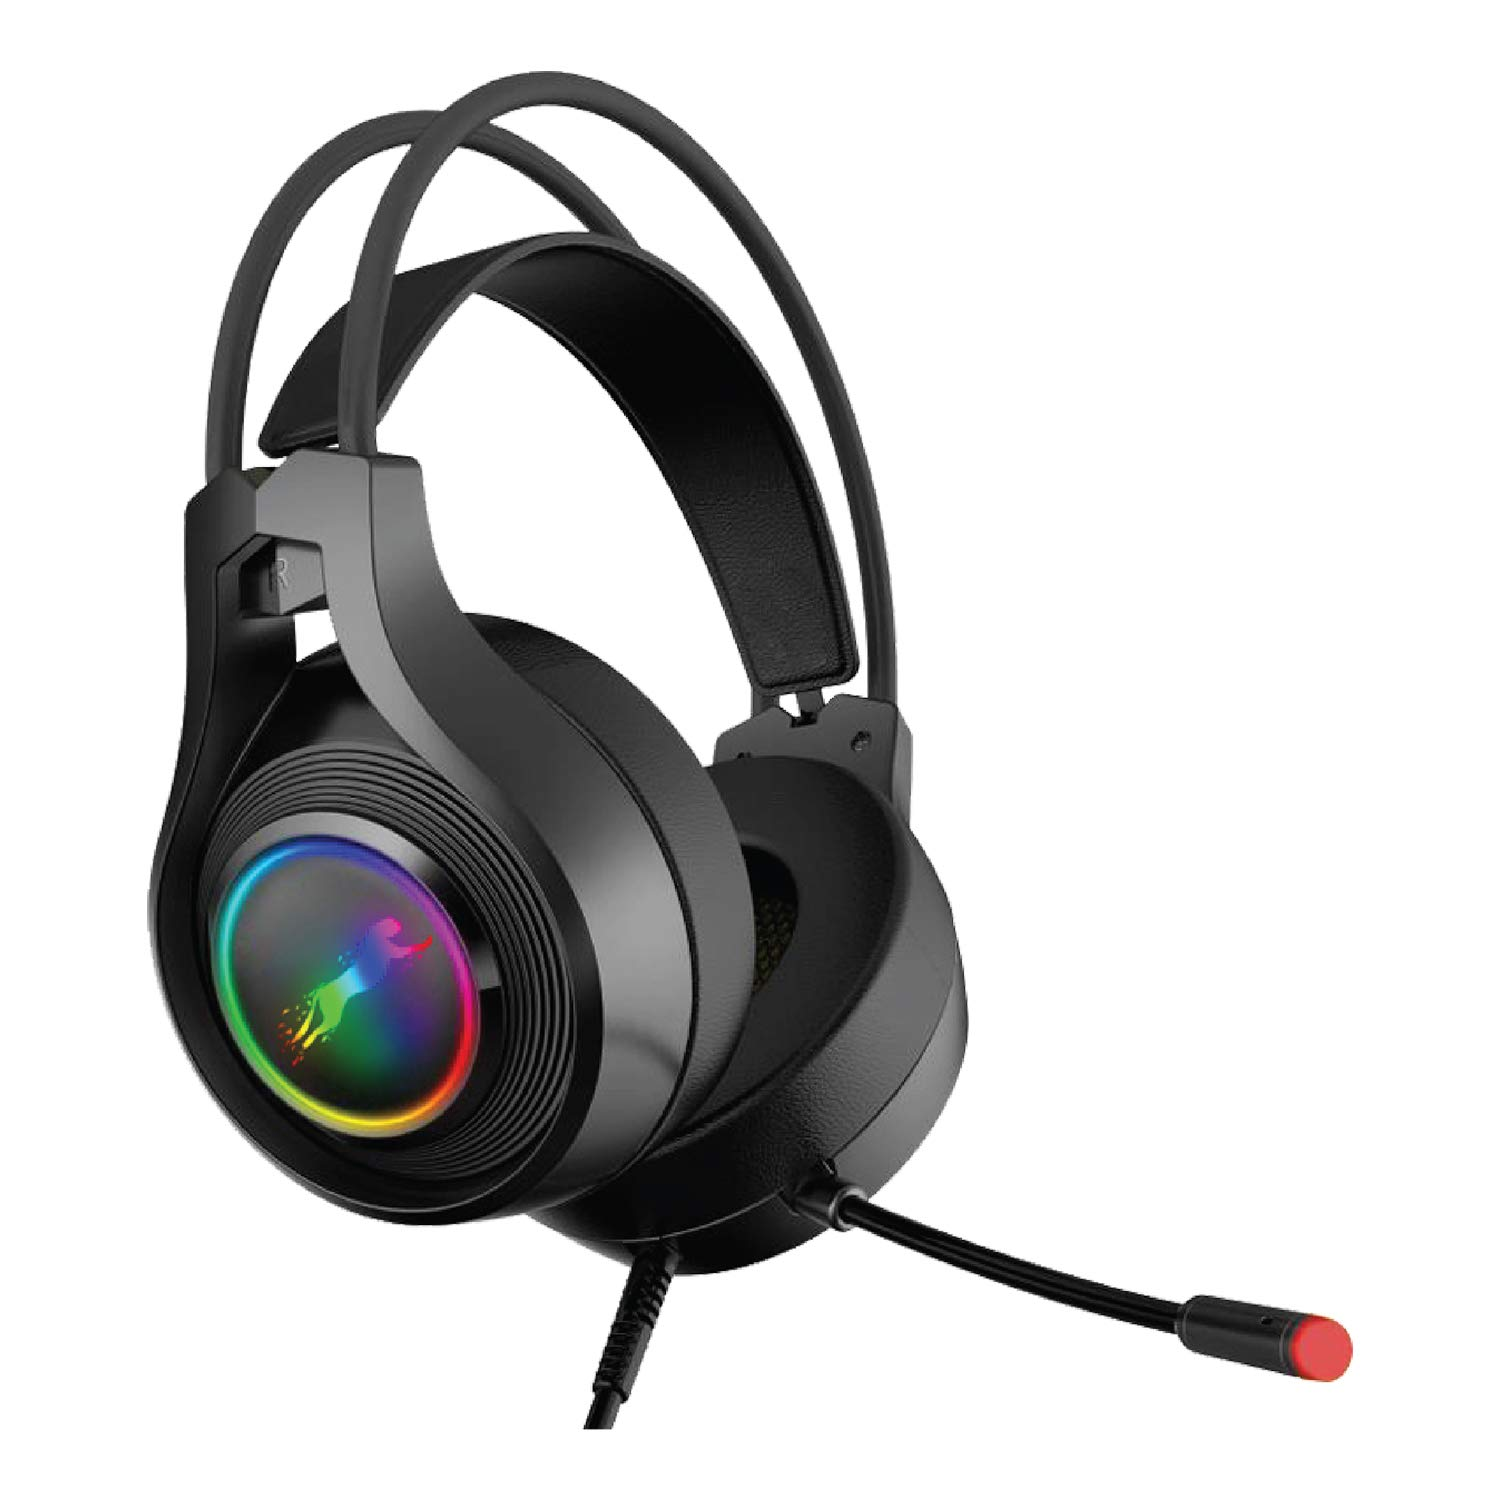 Mente Pro Performance Gaming Headset with RGB & 7.1 Surround Sound